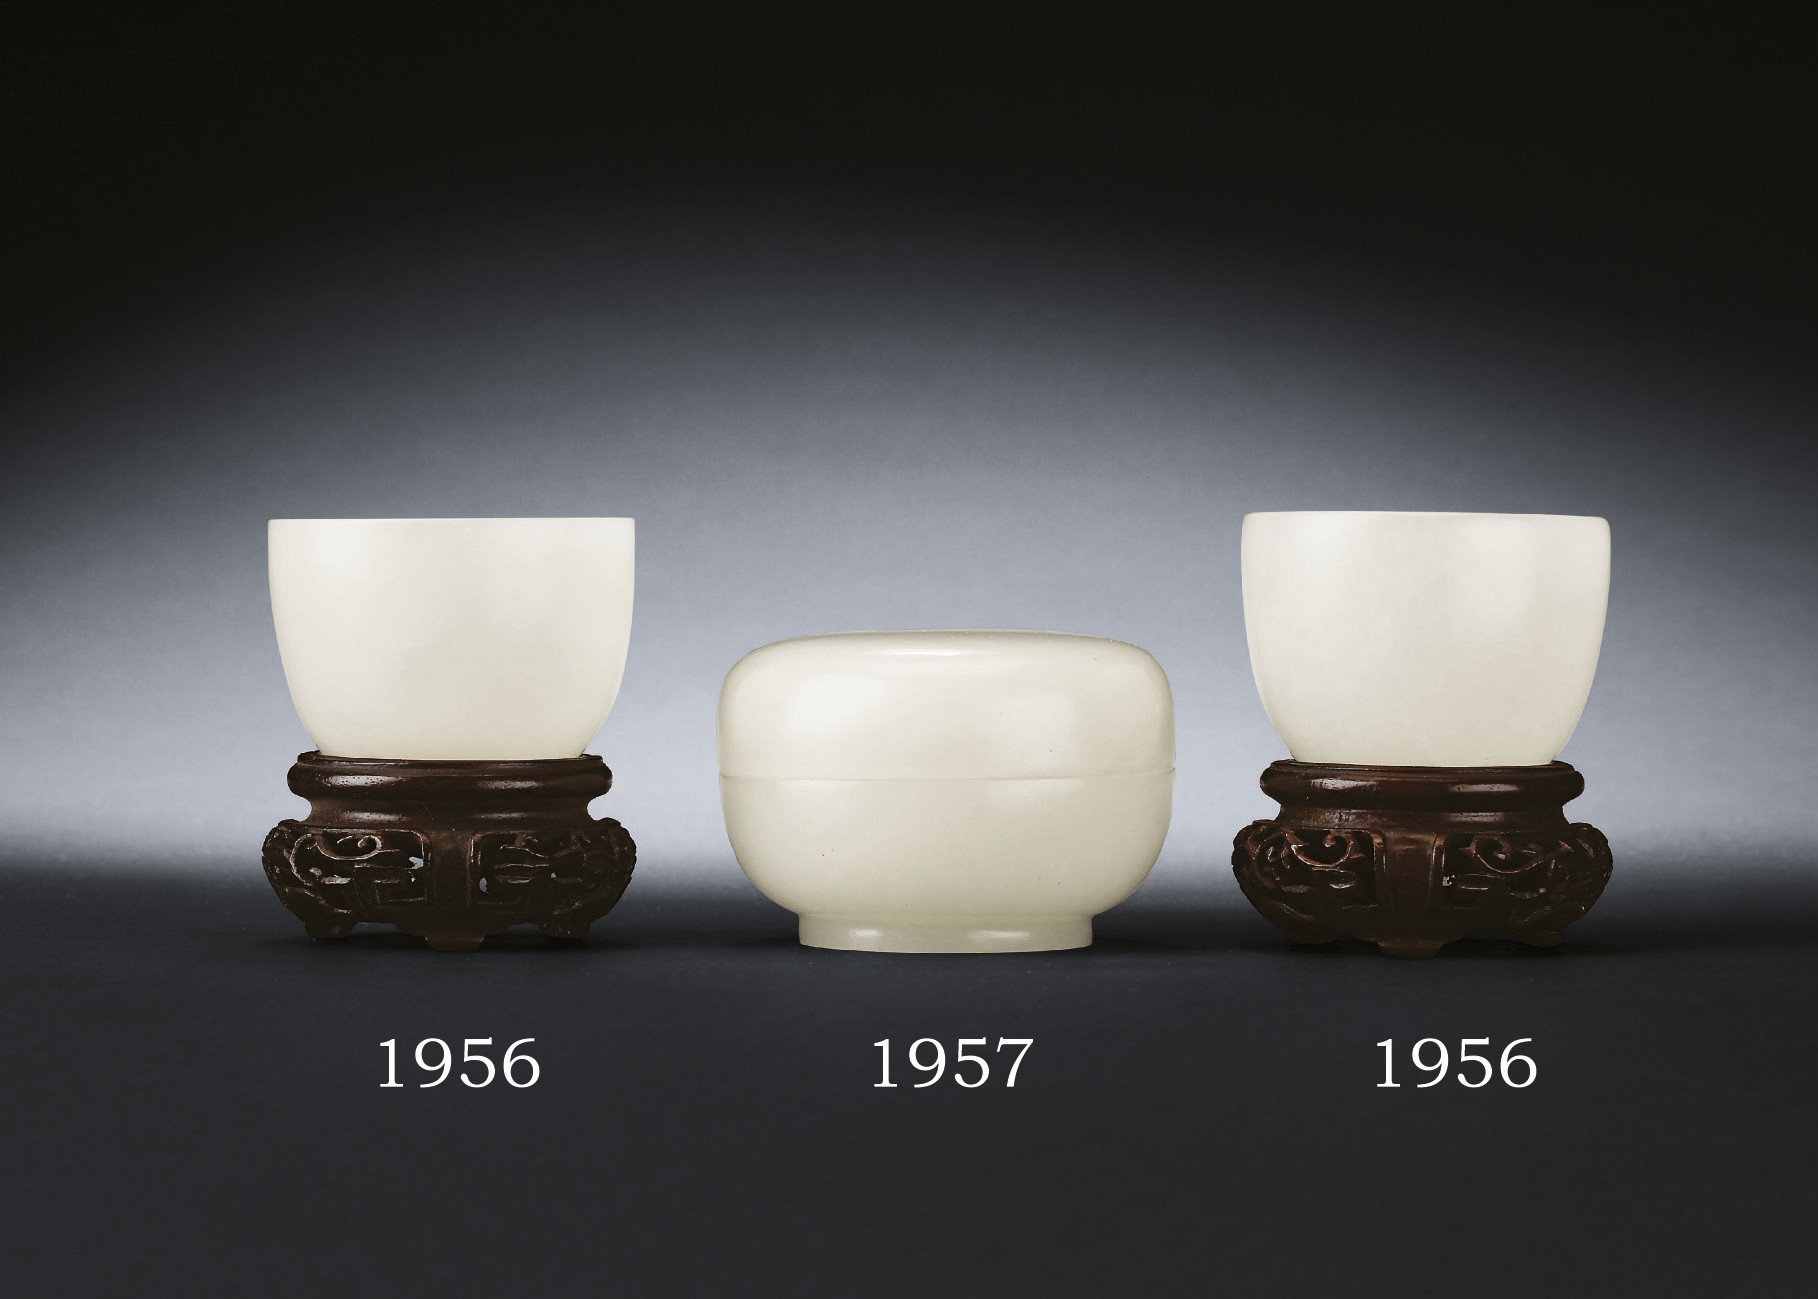 A FINE WHITE JADE COSMETIC BOX